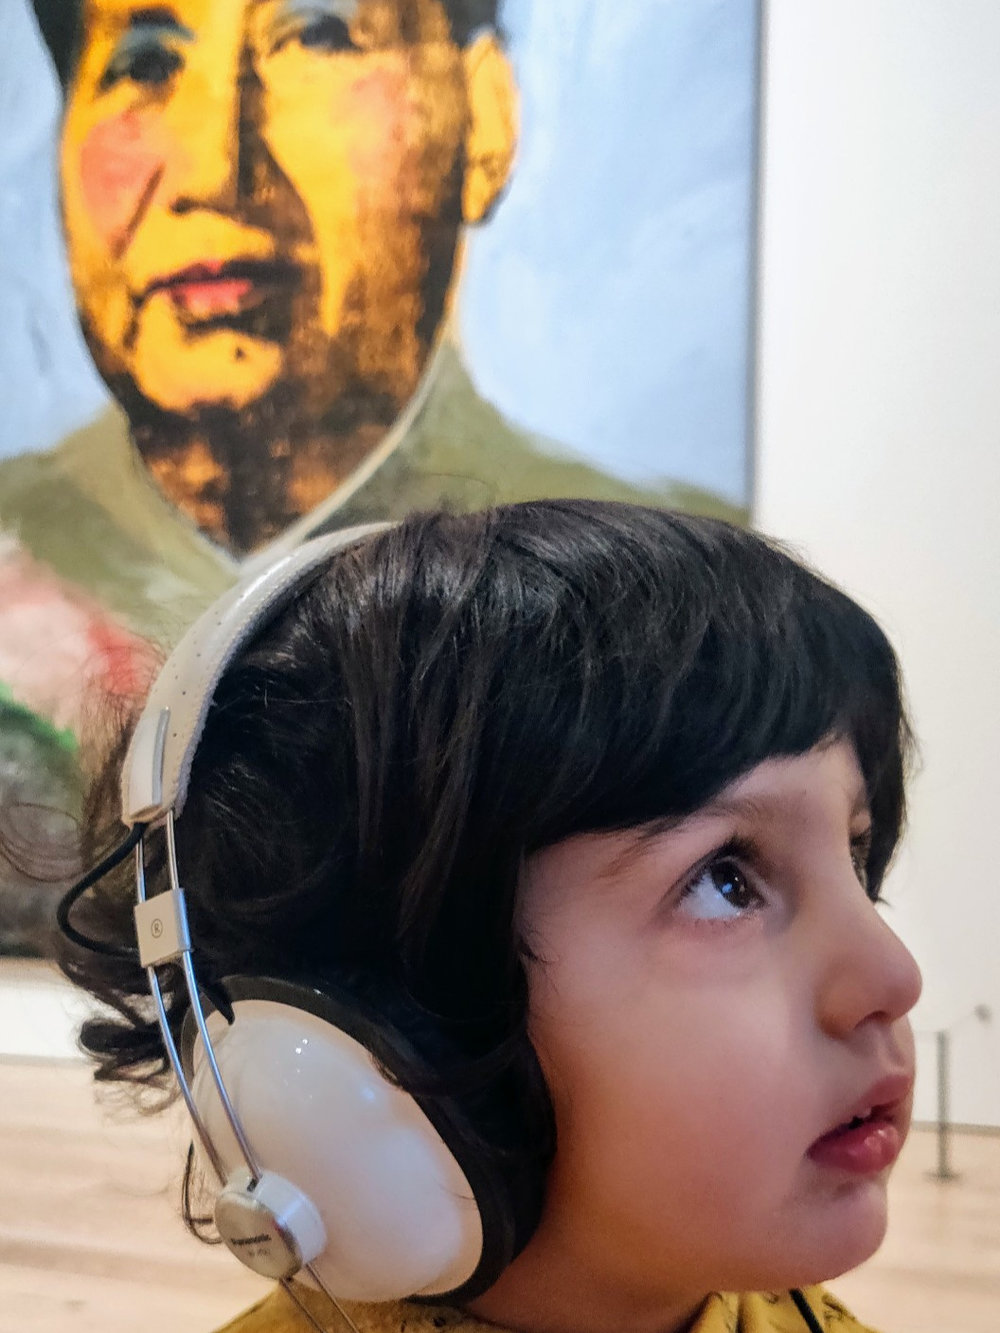 toddler in museum